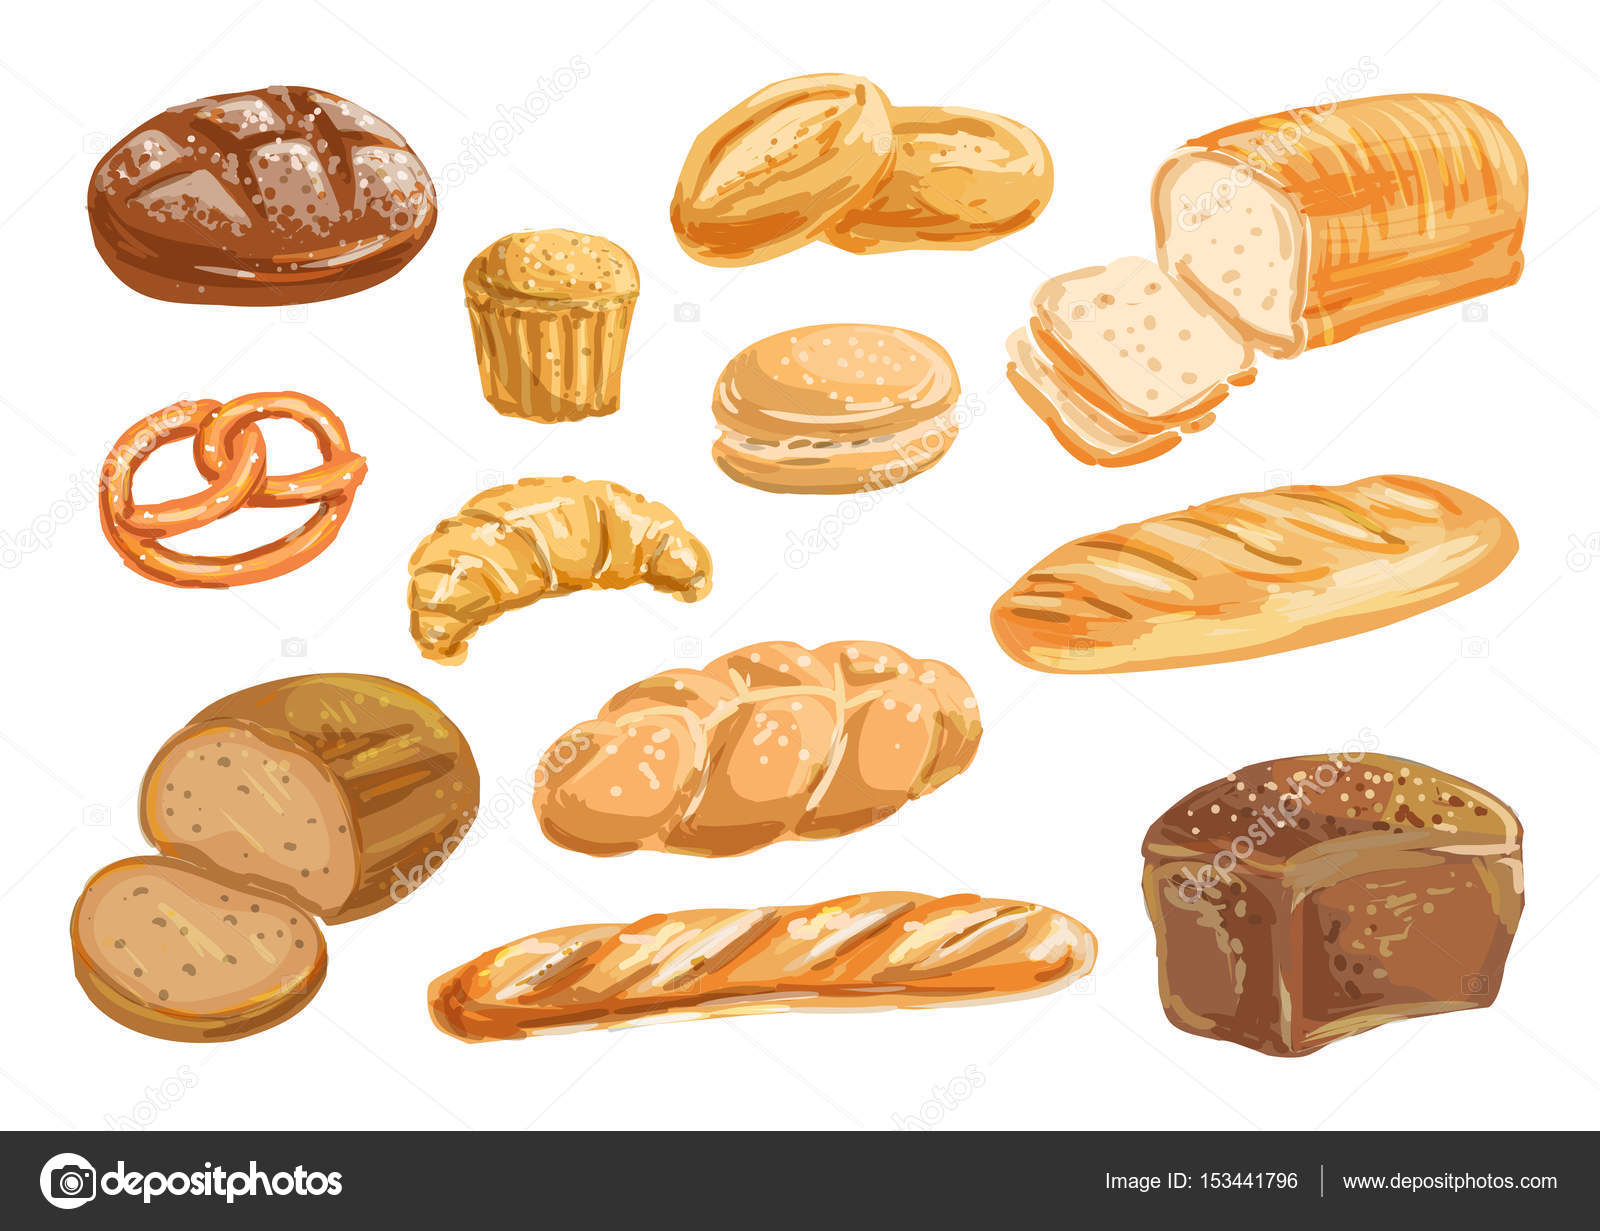 1600x1231 Bread And Bakery Product Watercolor Drawing Set Stock Vector